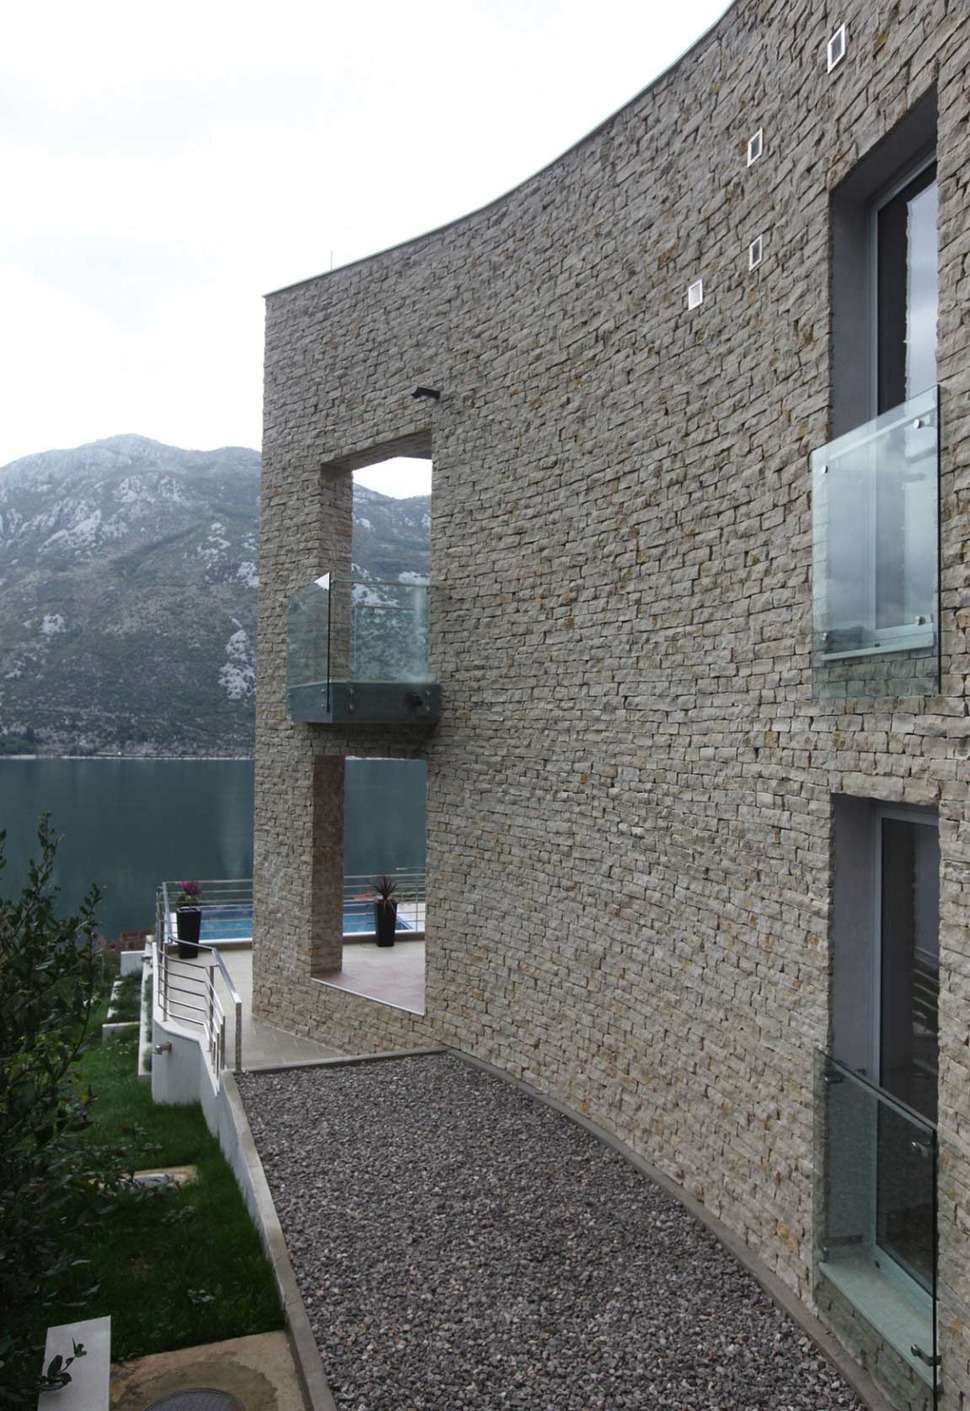 Villa With Curved Stone Walls On Adriatic Sea